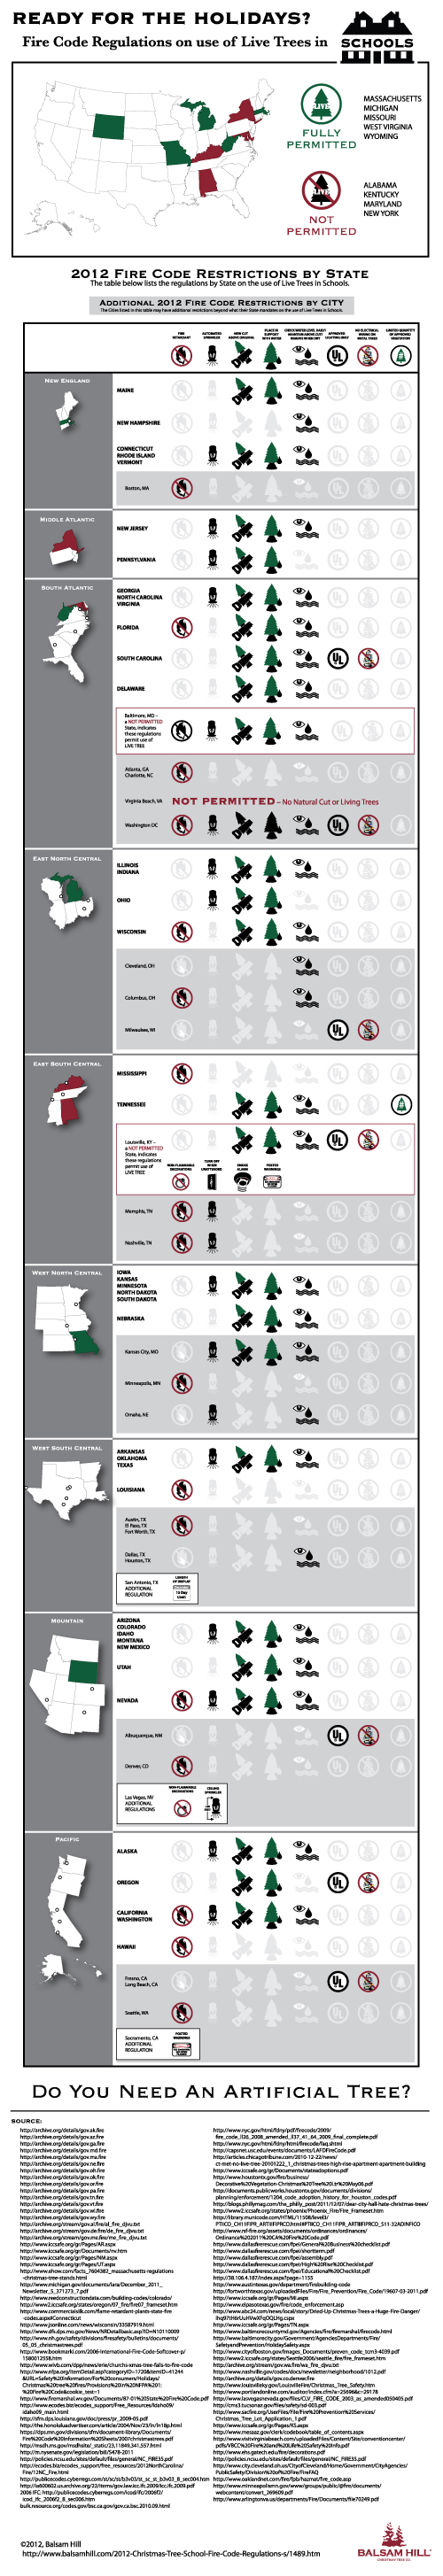 Fire Code Regulations for Live Christmas Trees in Schools infographic